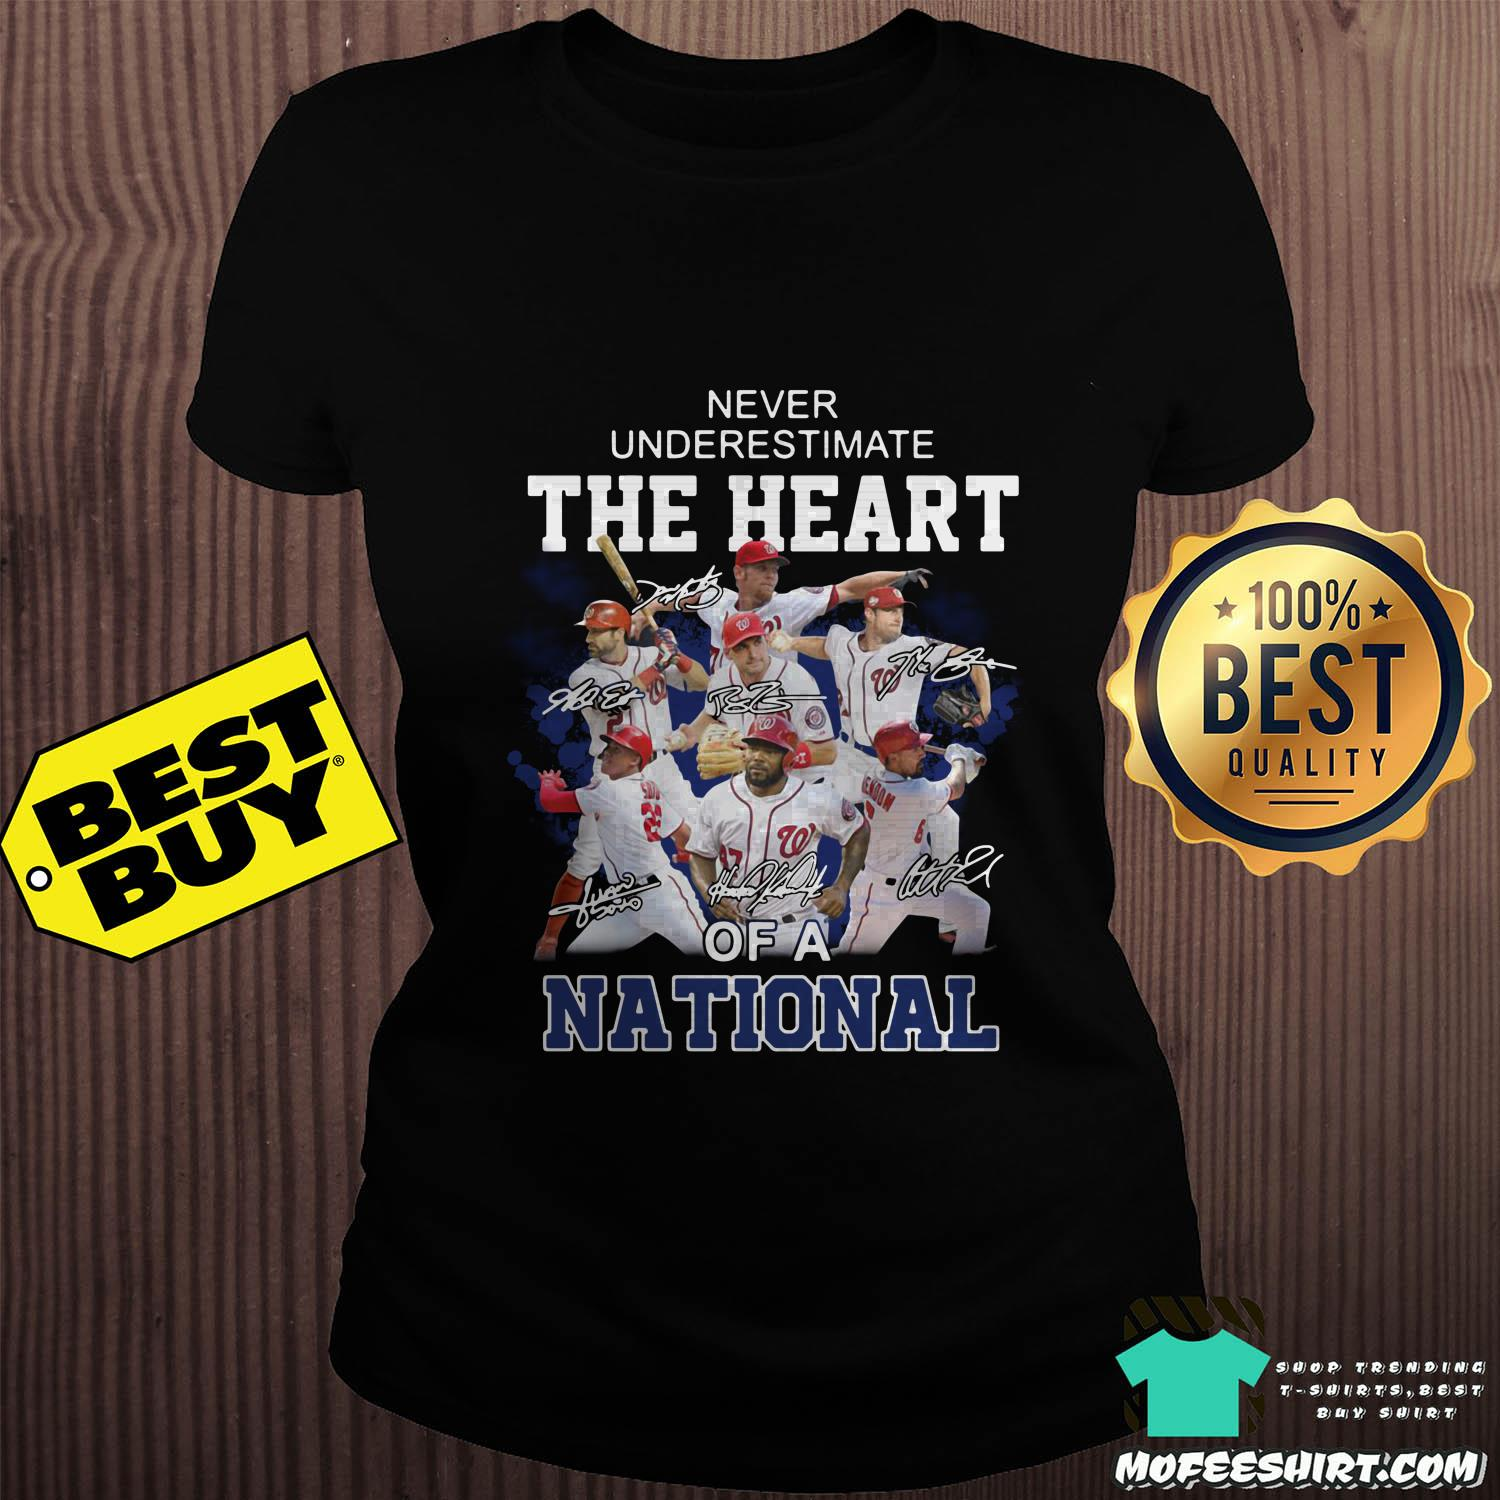 washington nationals never underestimate the heart of a national signatures ladies tee - Washington Nationals Never Underestimate The Heart of a National signatures shirt